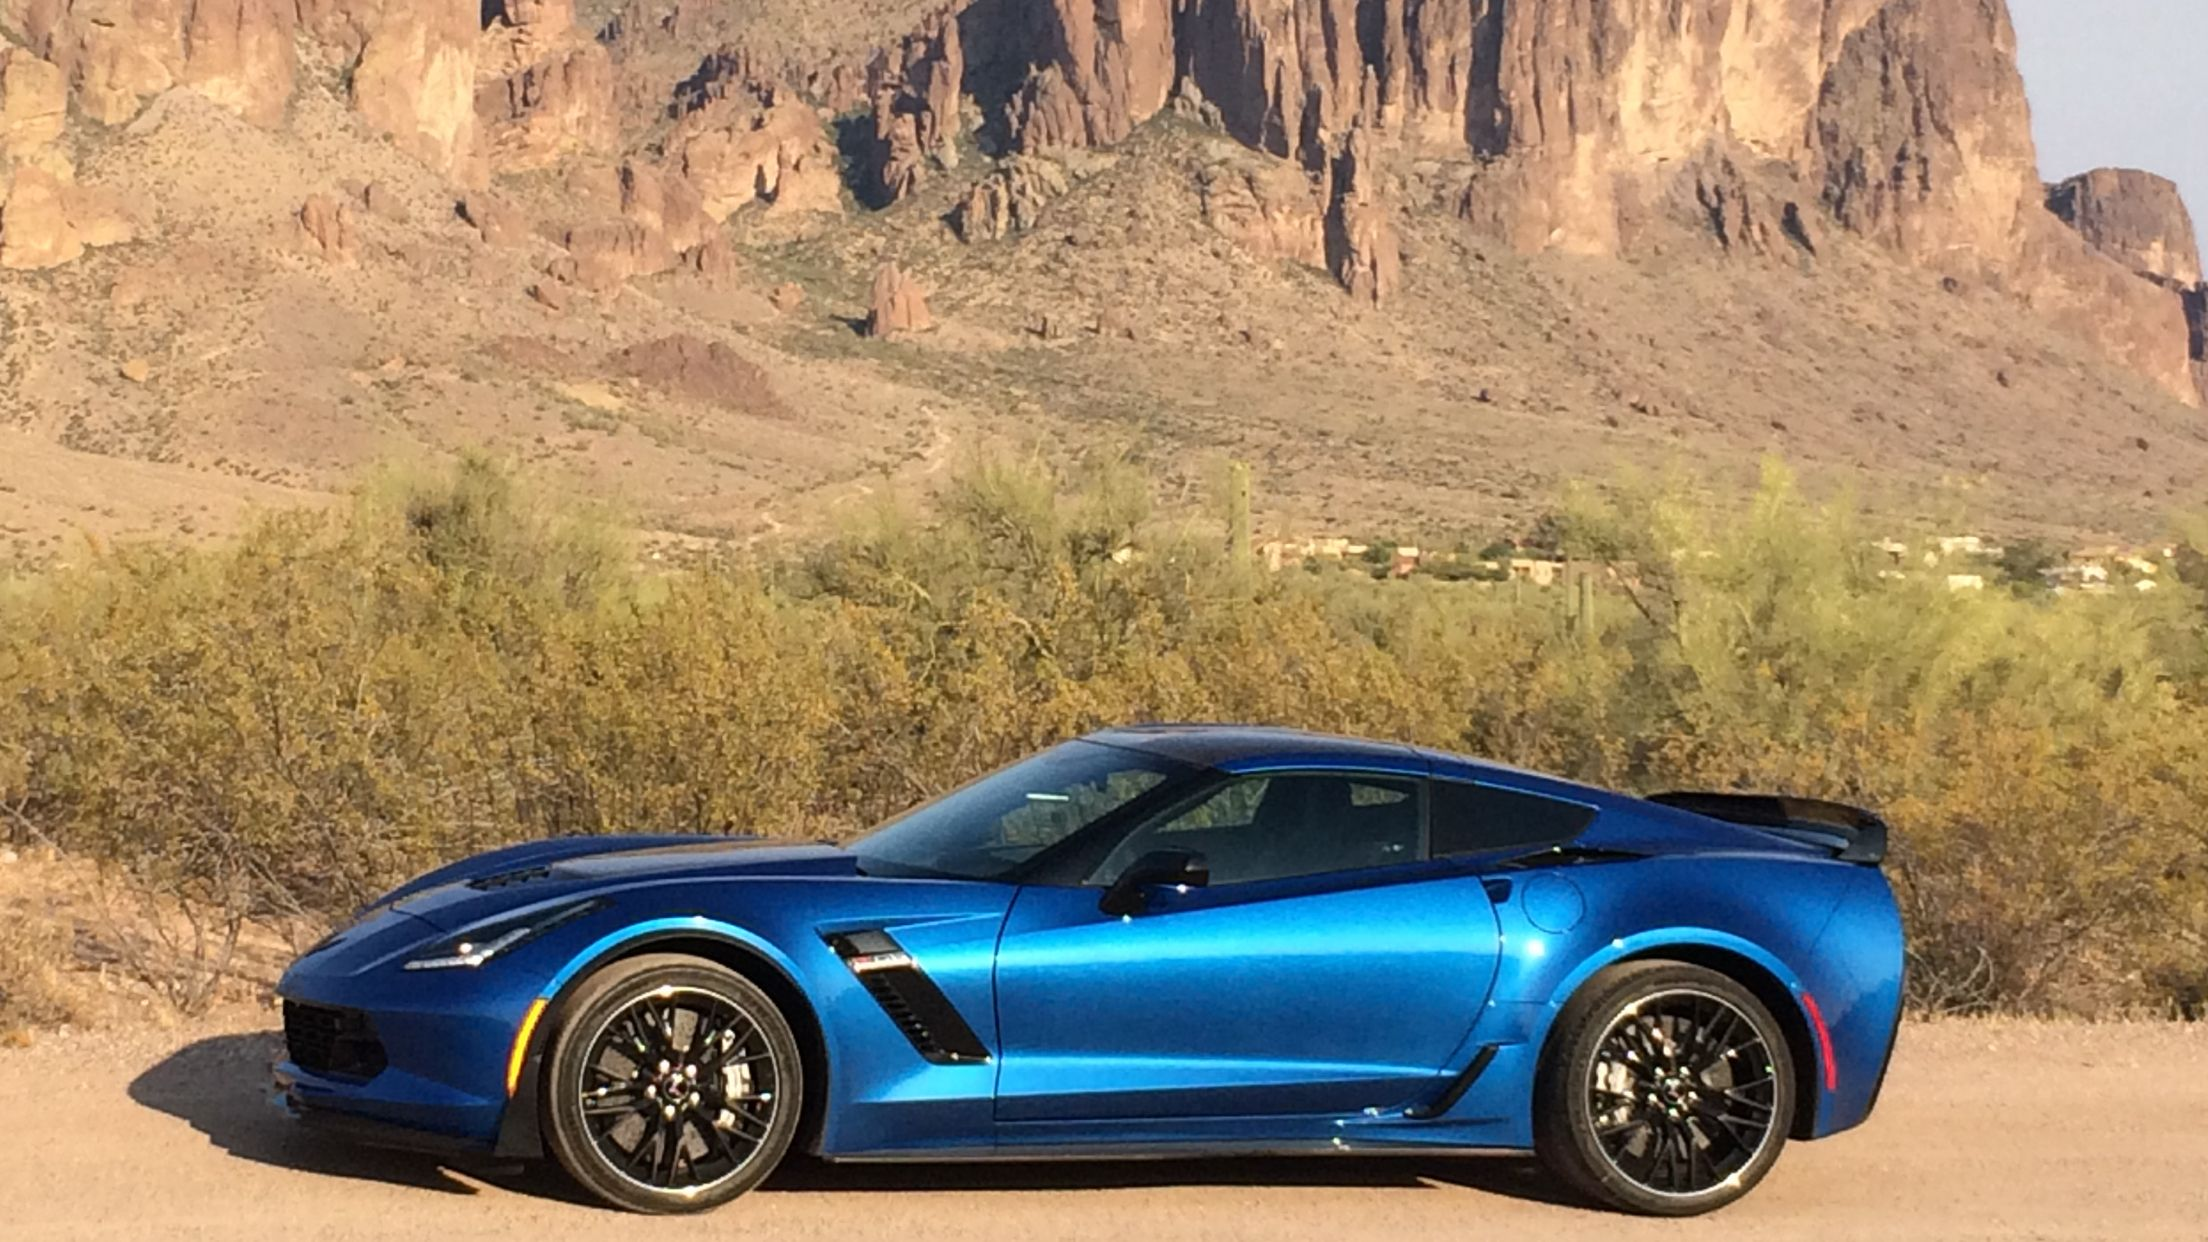 Laguna Blue 2016 Corvette C7 Z06 8 Speed Automatic A Gift From My